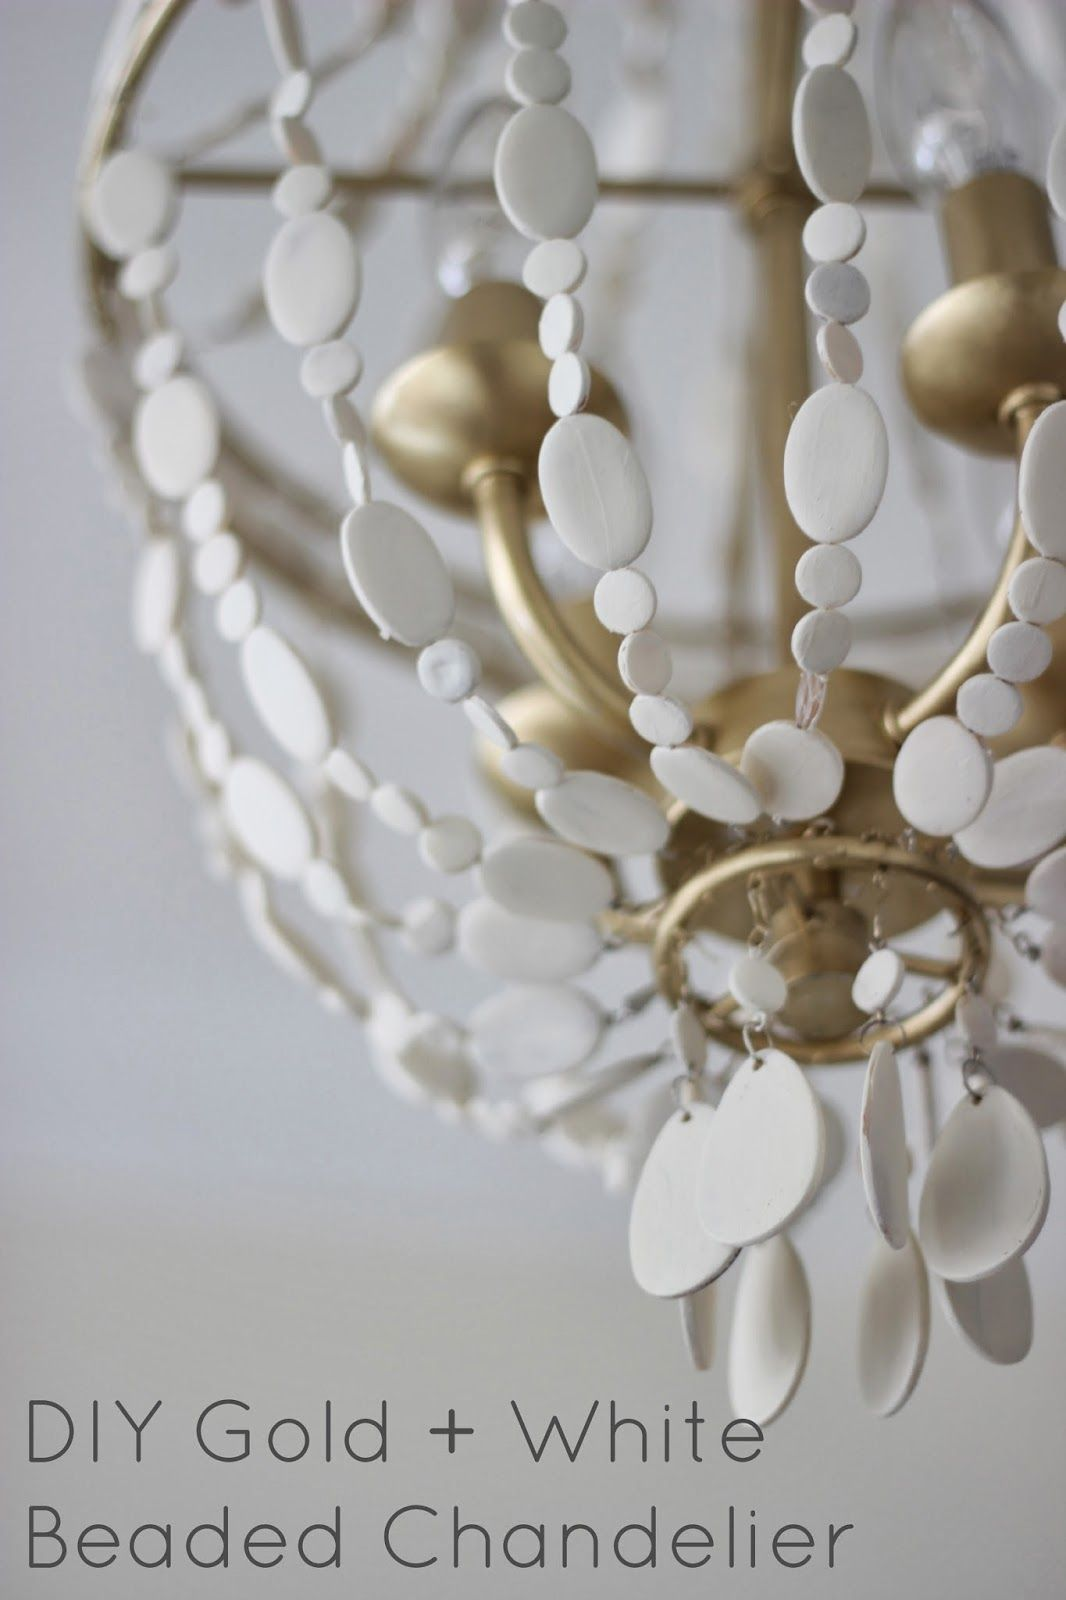 Miss dixie diy gold white beaded chandelier entry foyer miss dixie diy gold white beaded chandelier arubaitofo Image collections